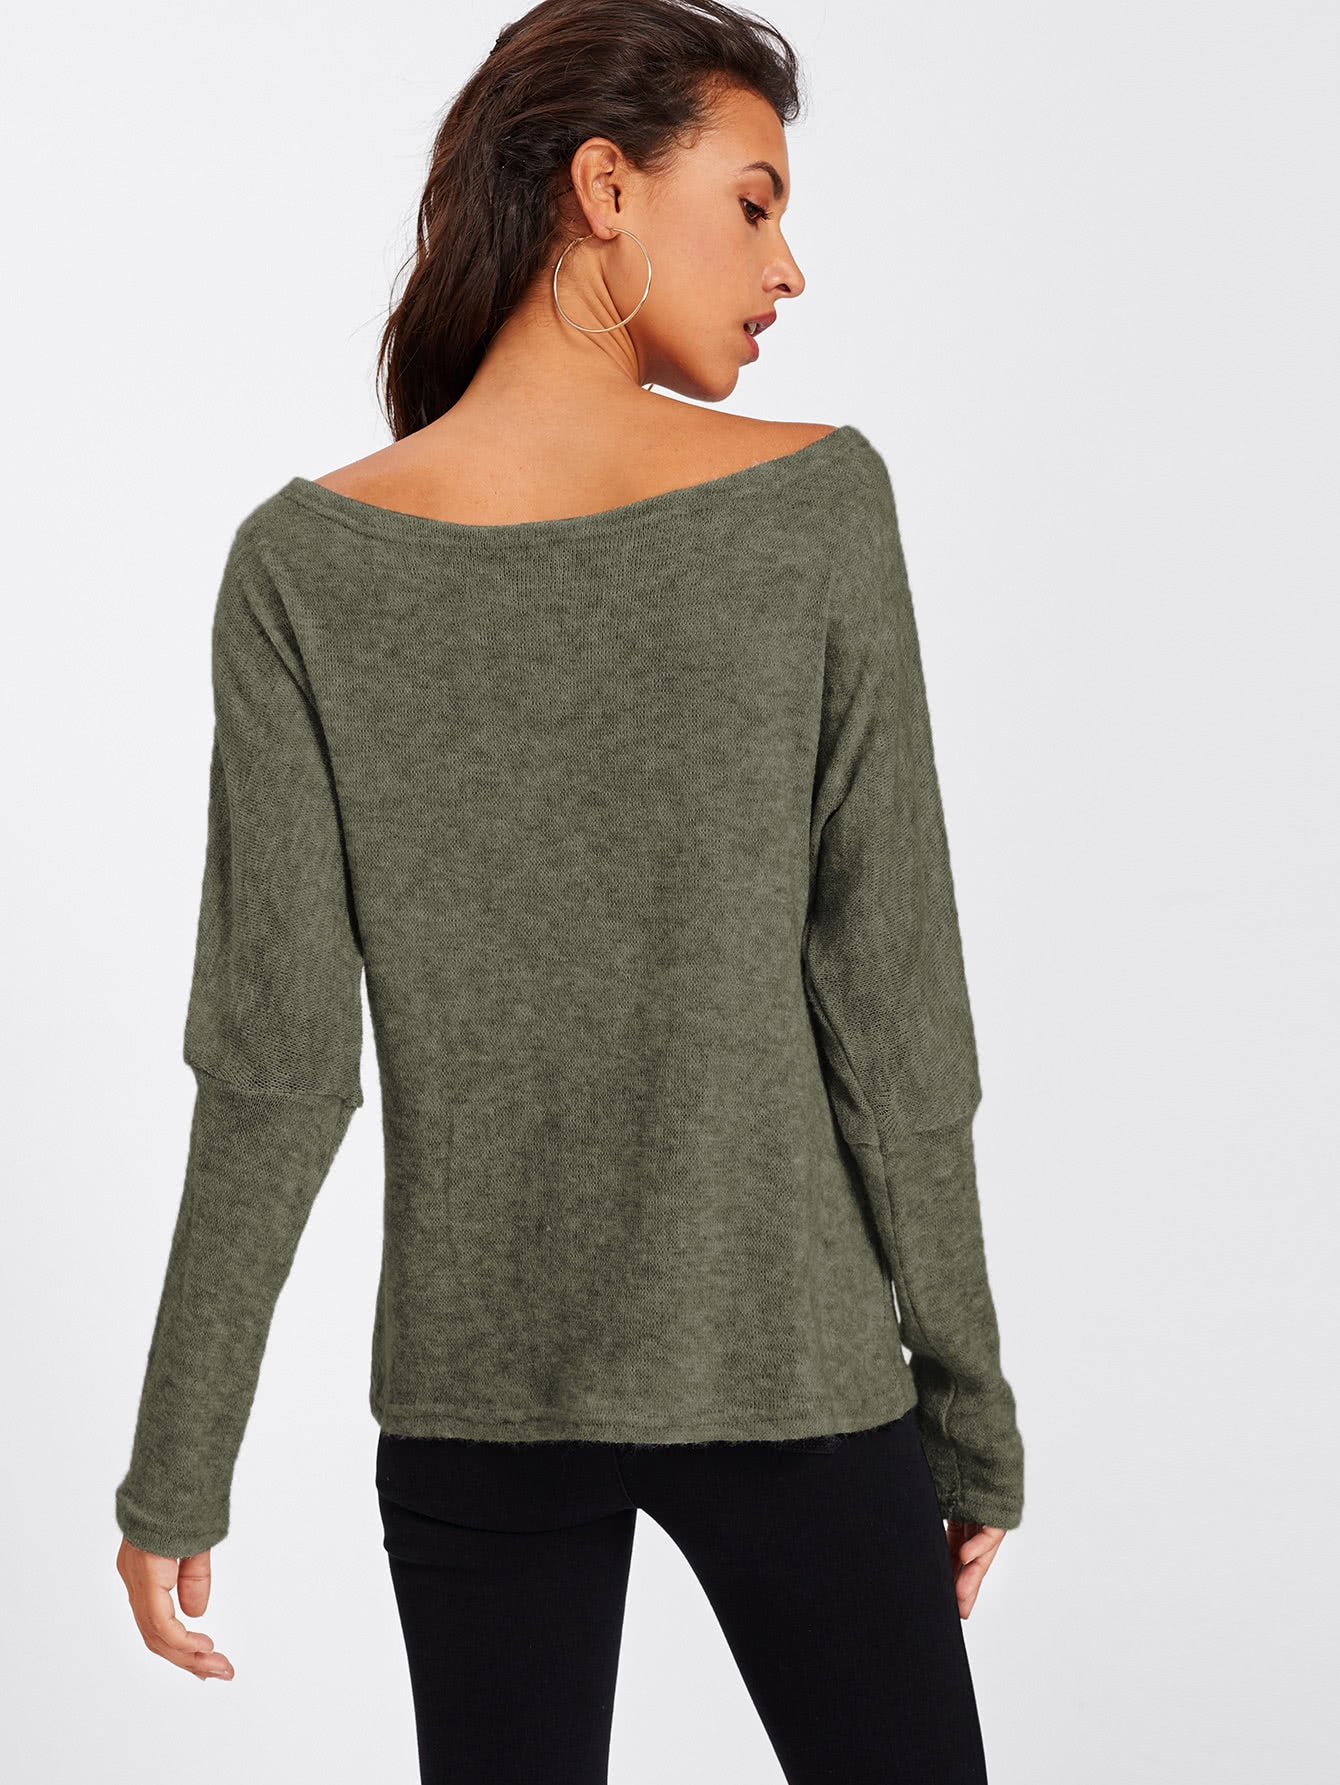 Batwing Sleeve Sweater - Tiny Town Essentials